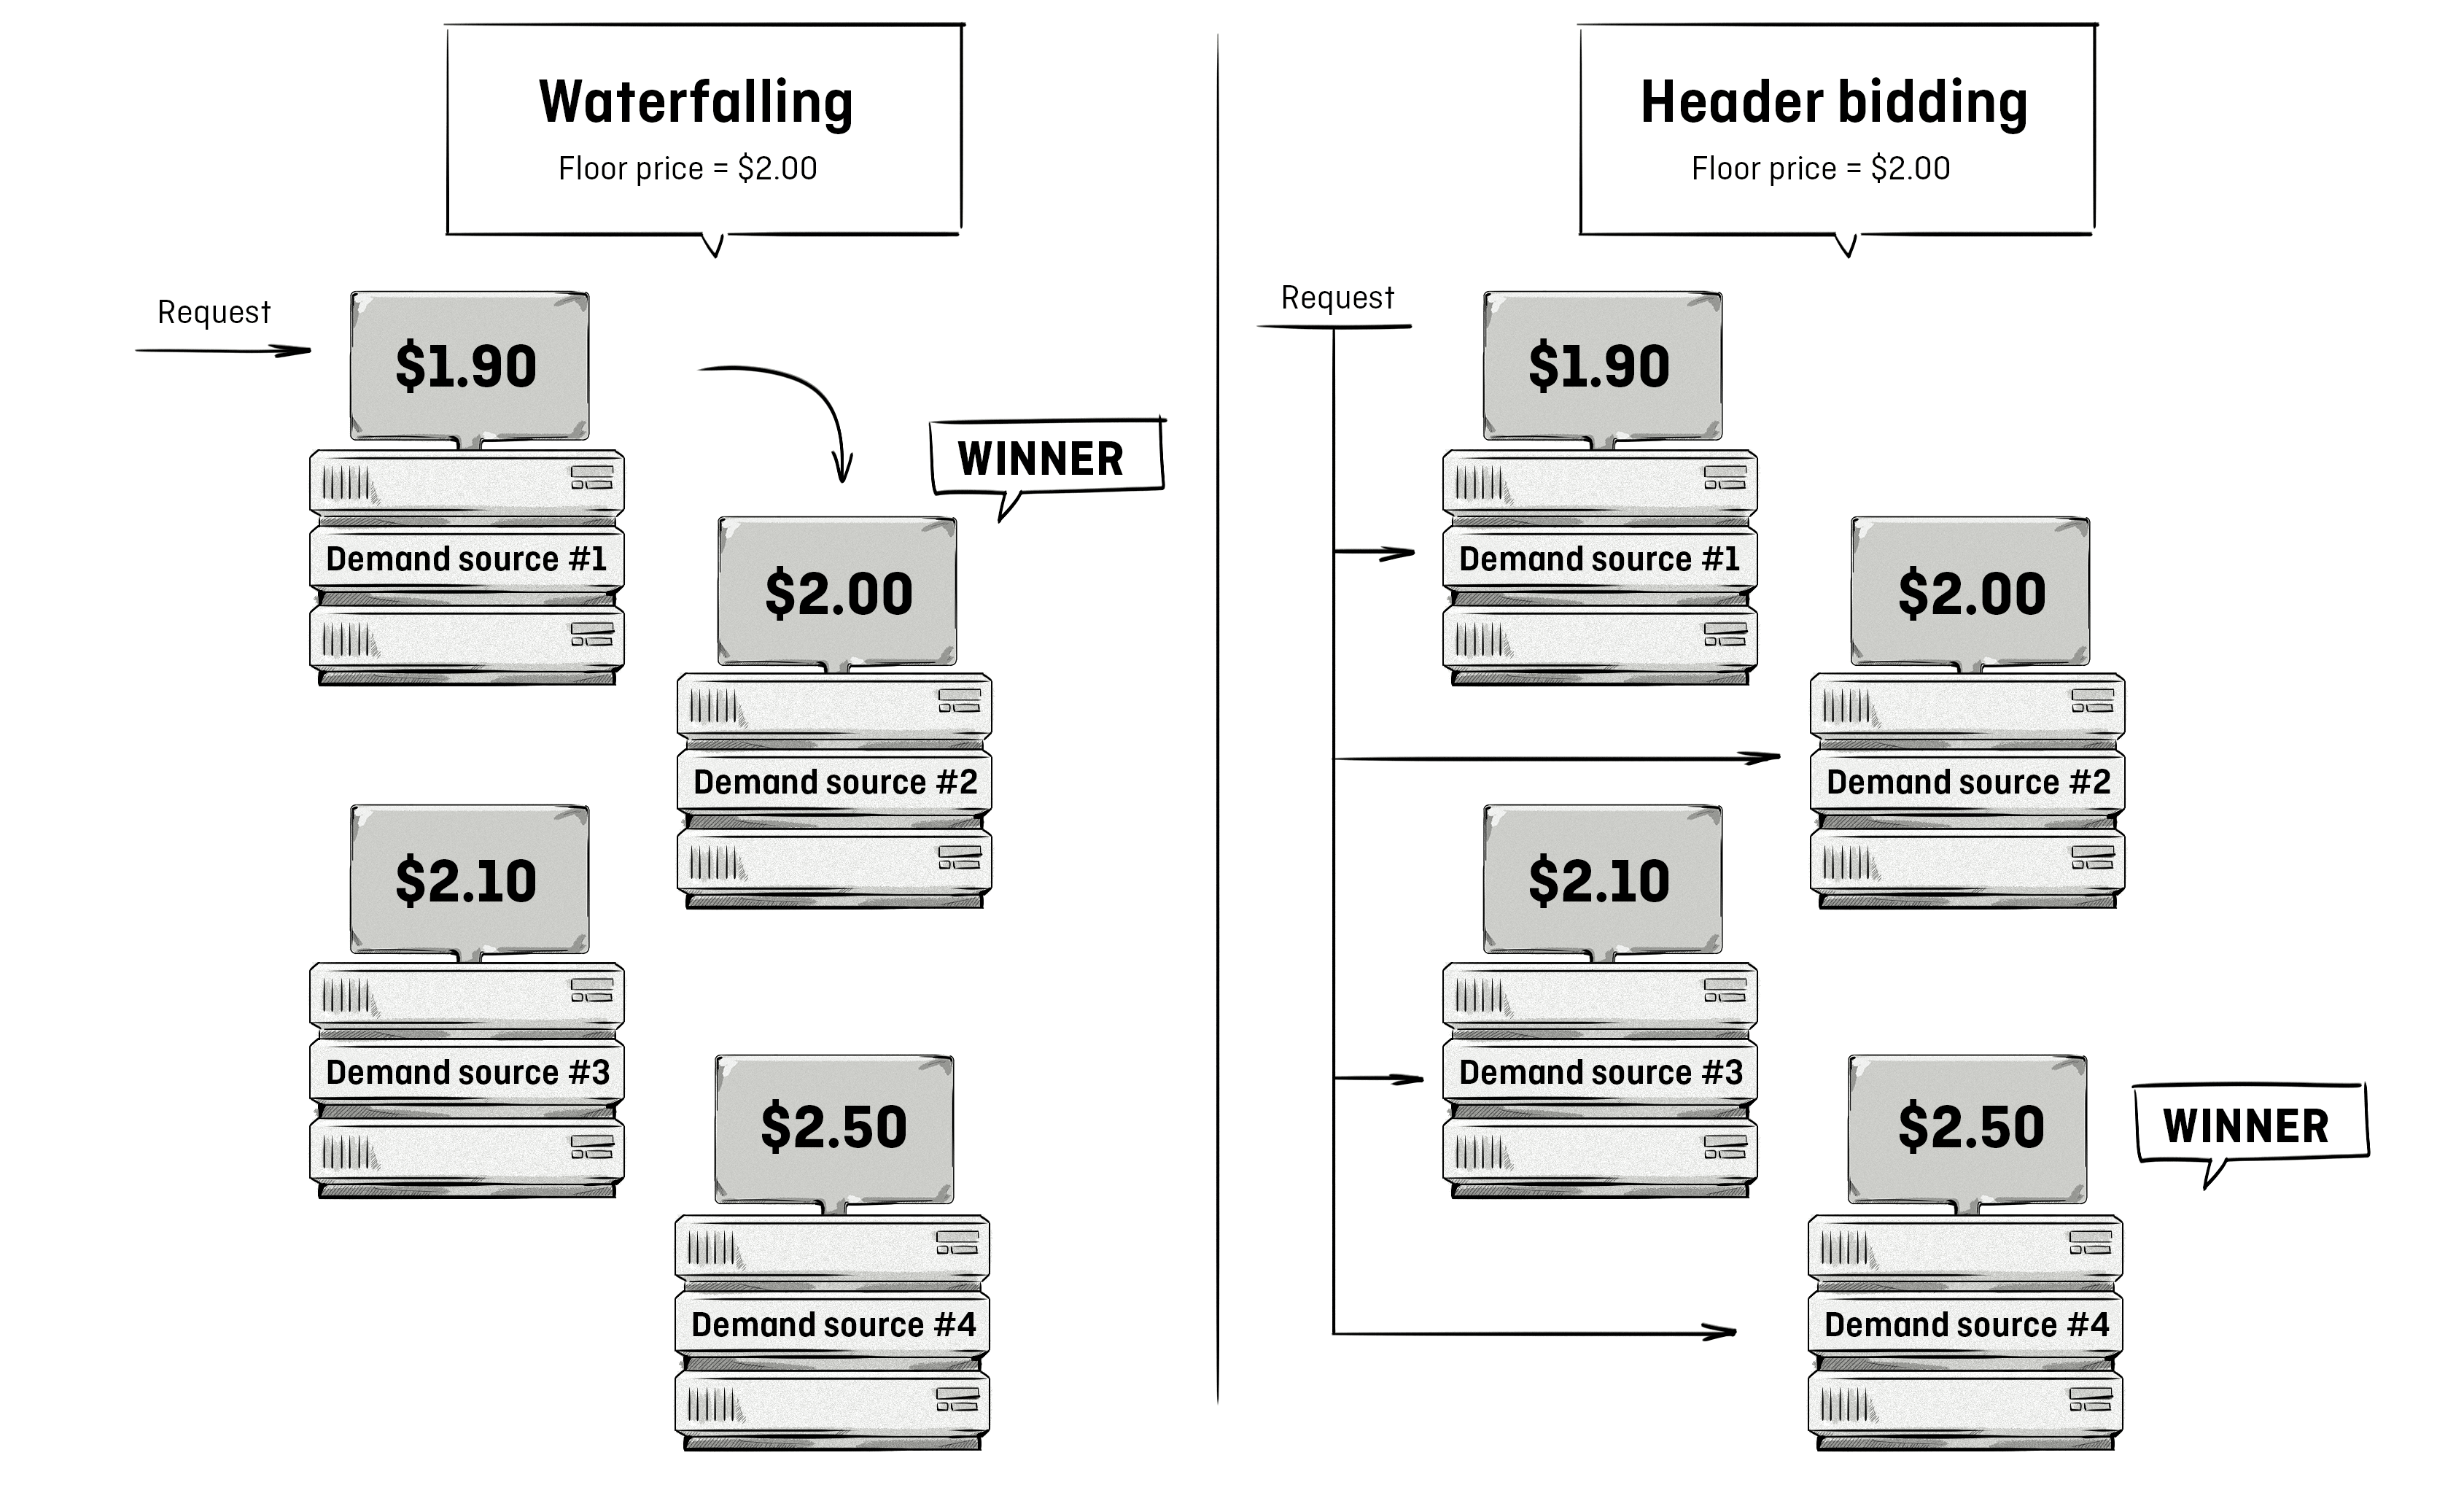 difference between waterfalling and header bidding